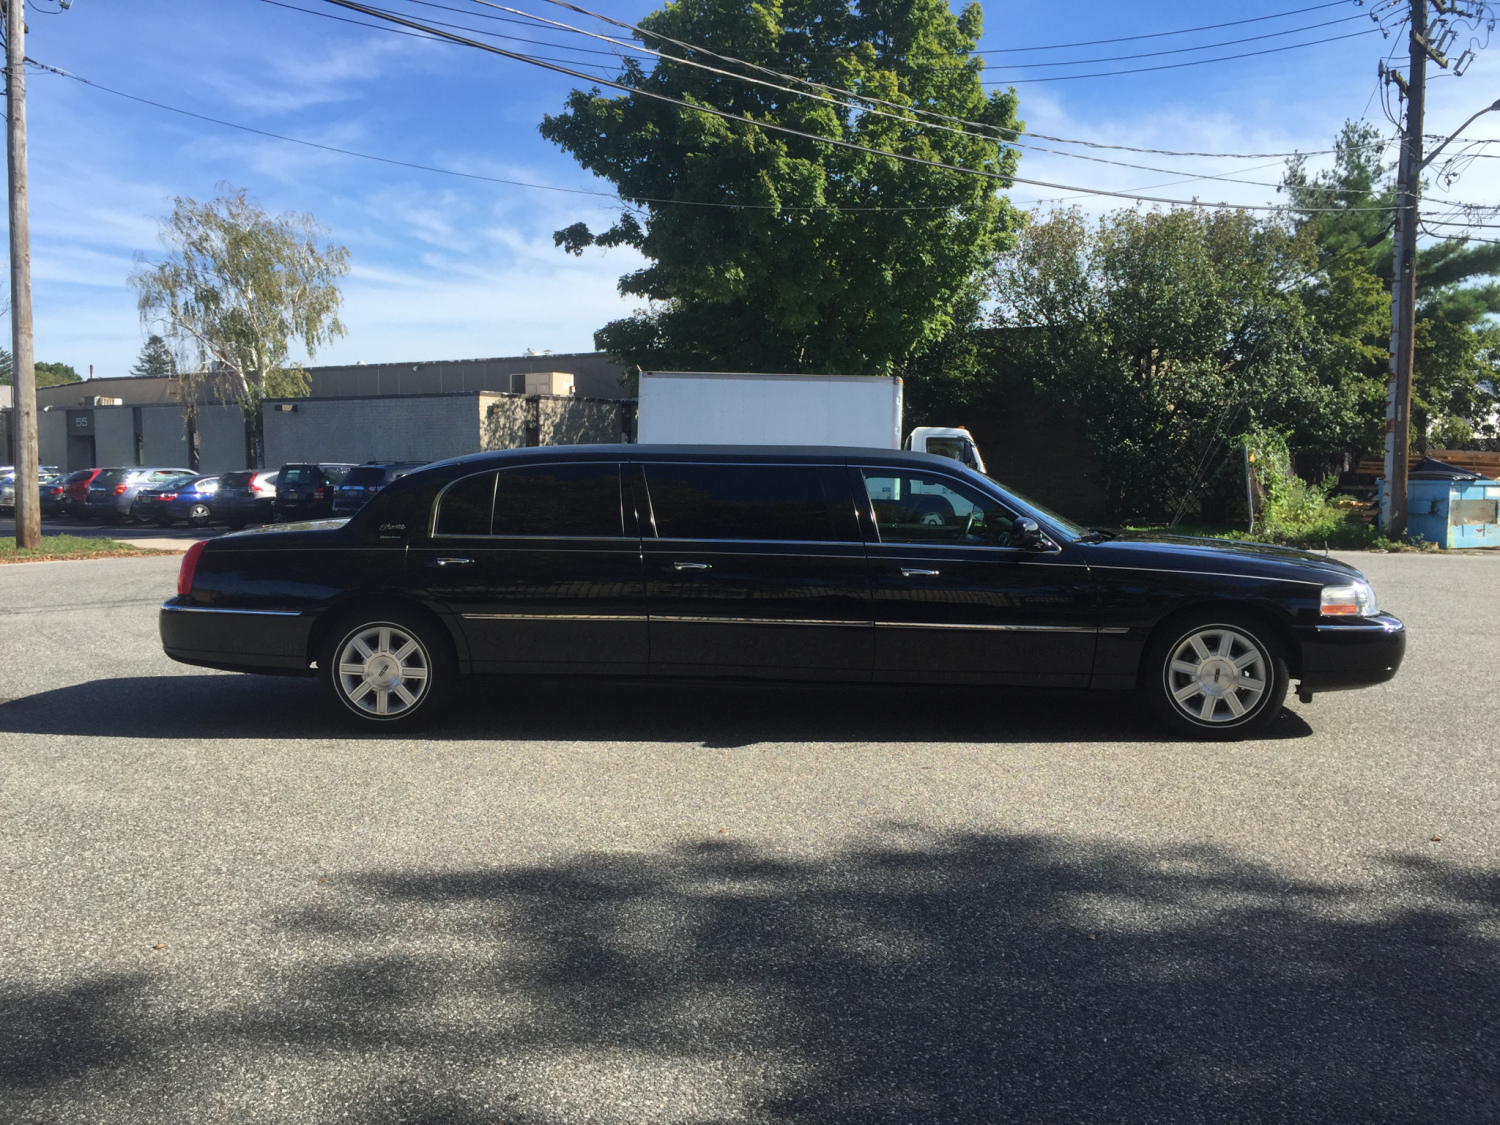 Where can you find a used funeral limousine?